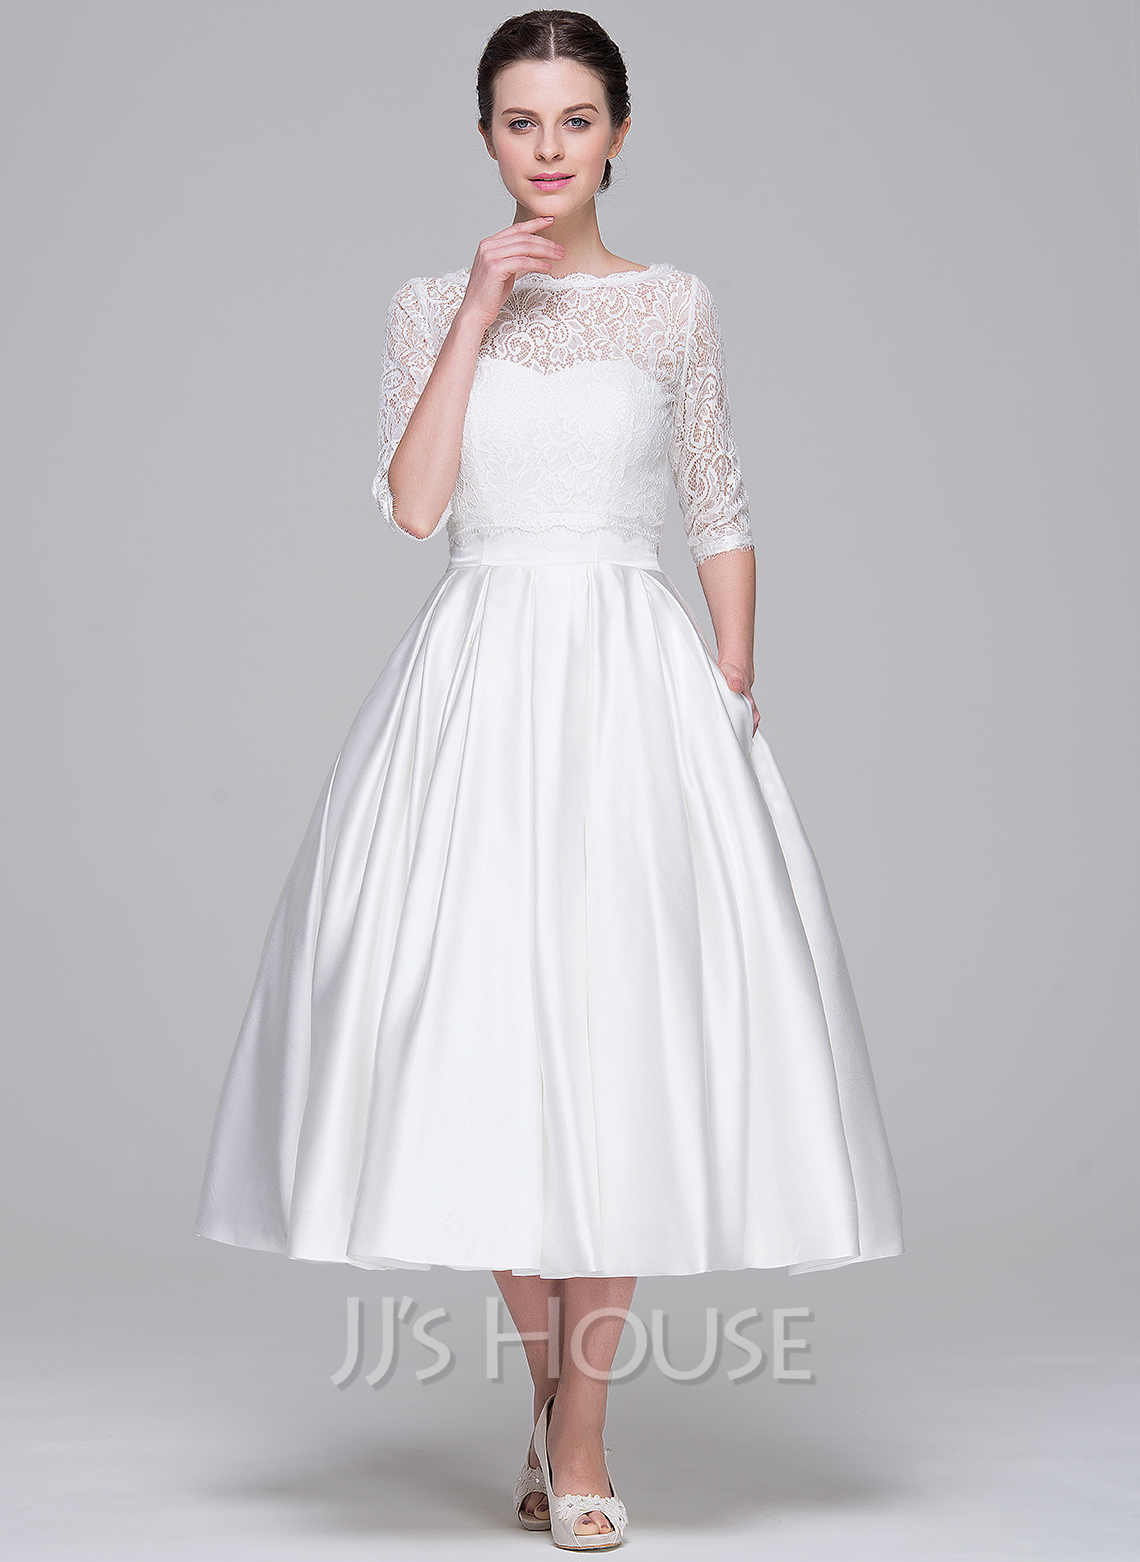 A Line Princess Sweetheart Tea Length Satin Wedding Dress g jjs house wedding dresses Home Wedding Dresses Loading zoom